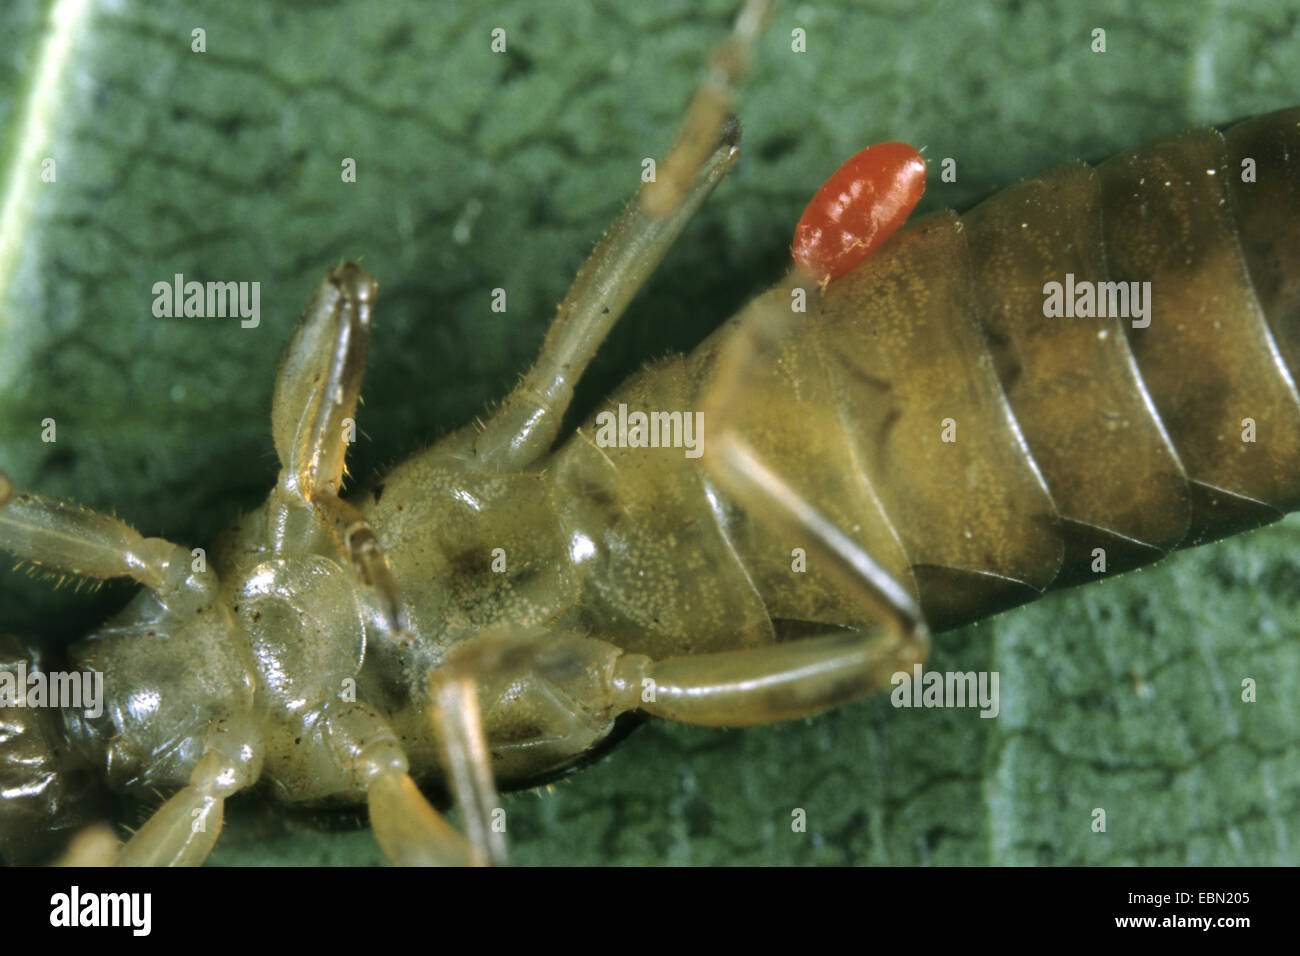 Earwig (Forficula spec.), with parasitic Trombidium larva, Germany - Stock Image